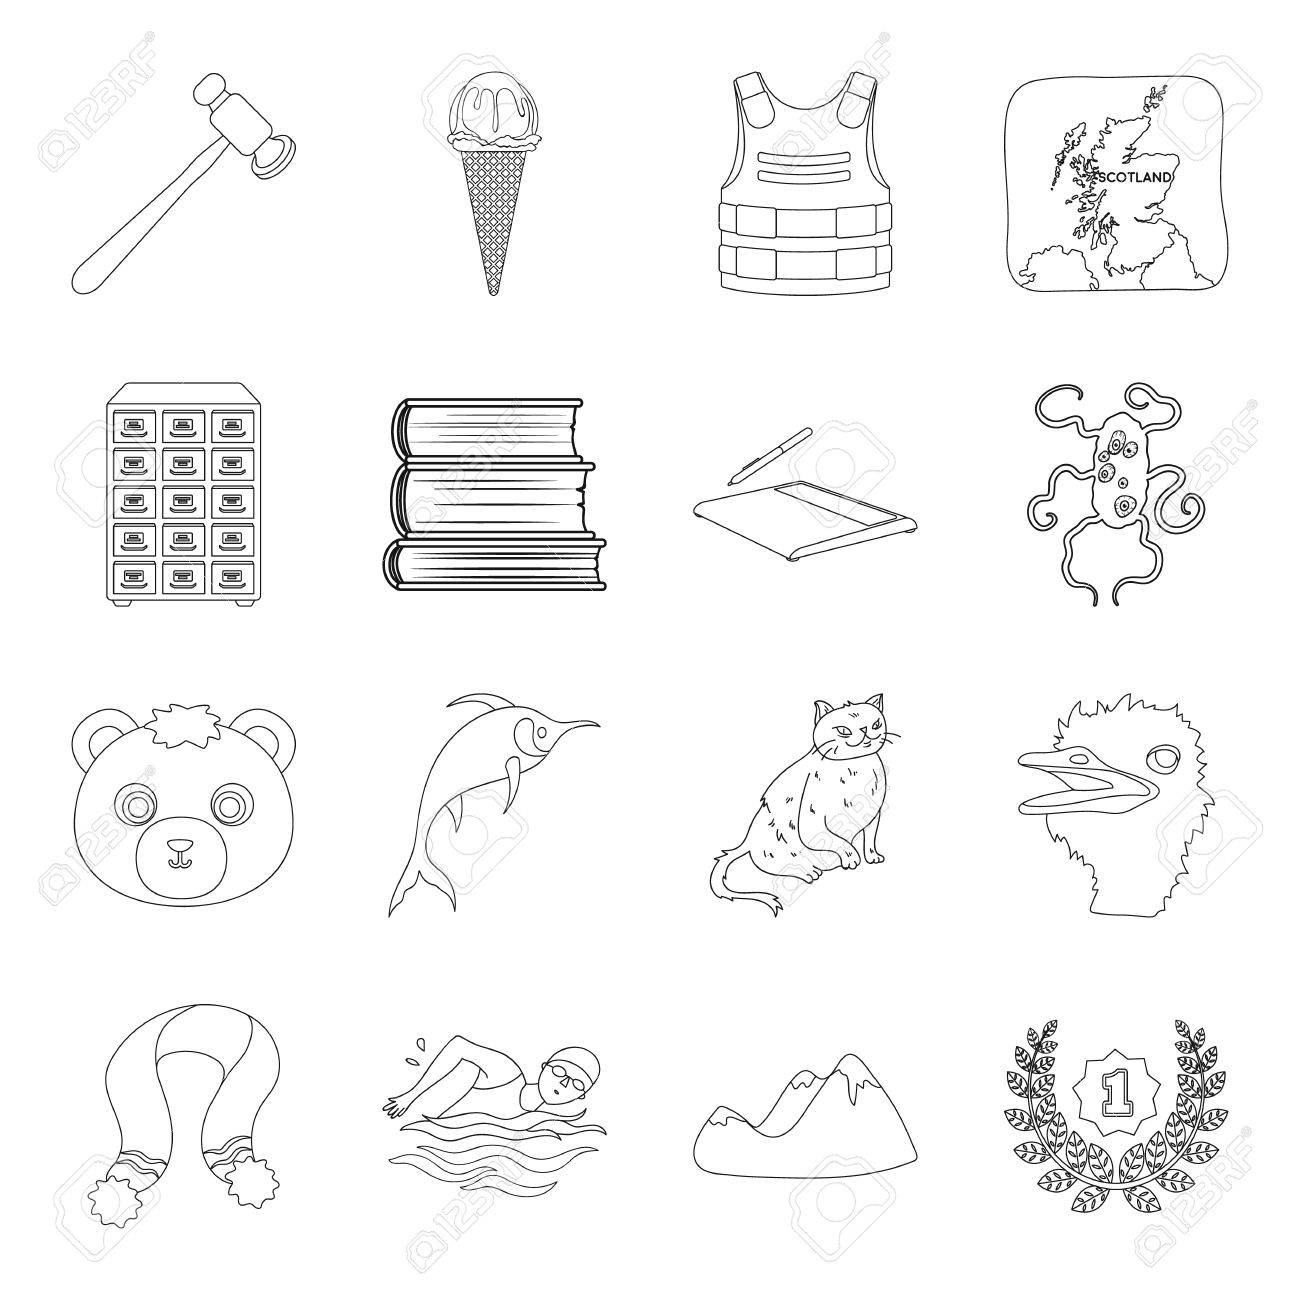 Animal, library, technology and other web icon in outline style